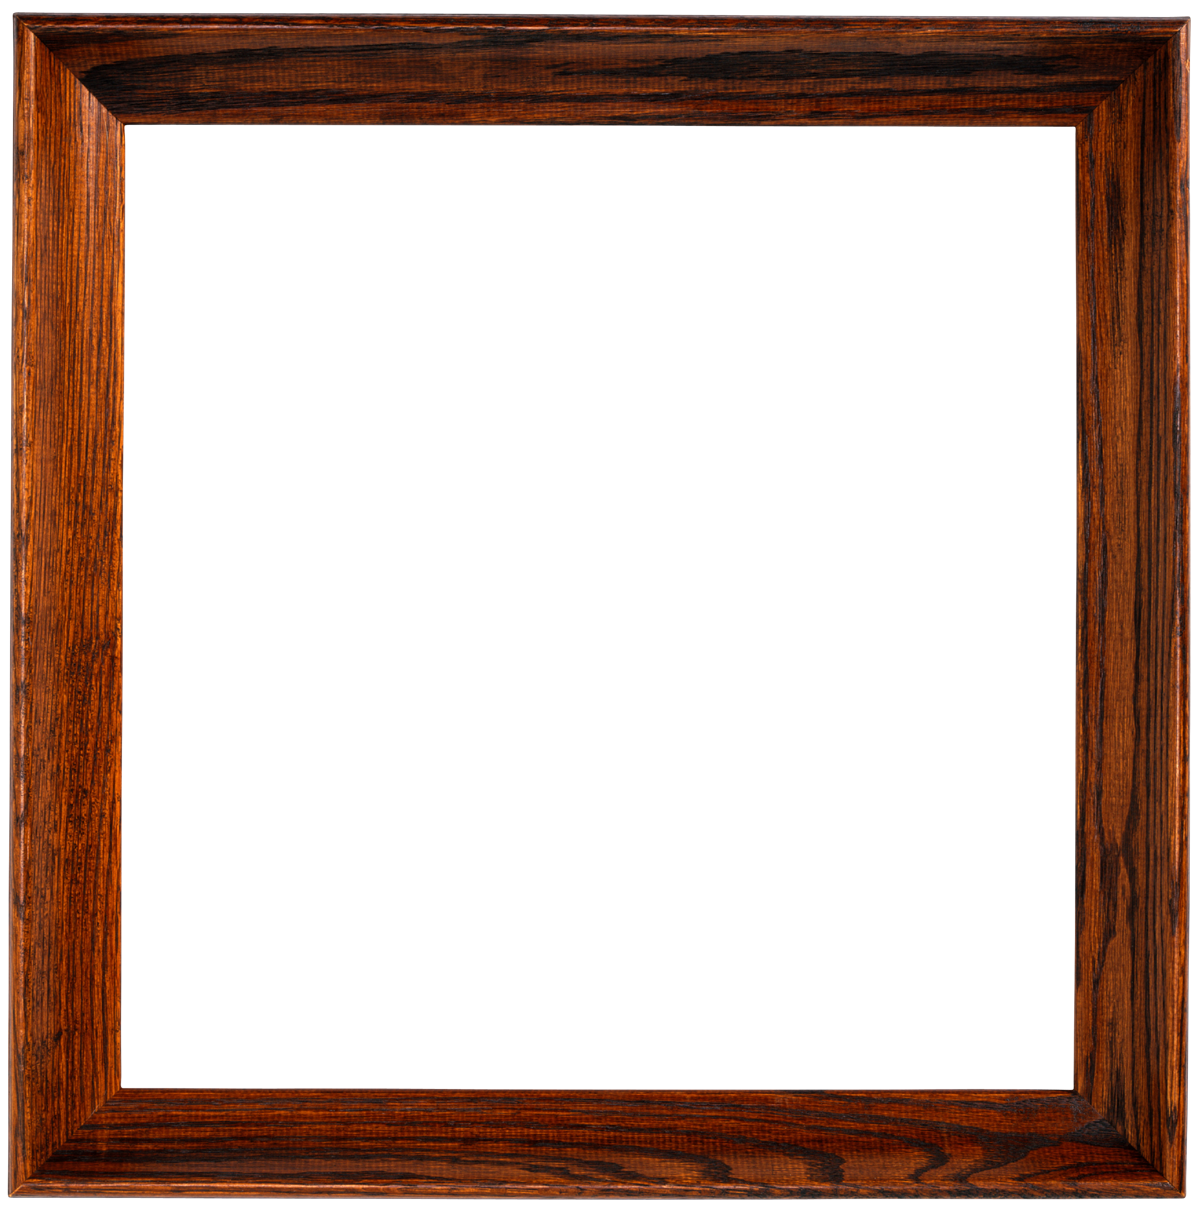 Rustic Wood Frame PNG isolated transparent images